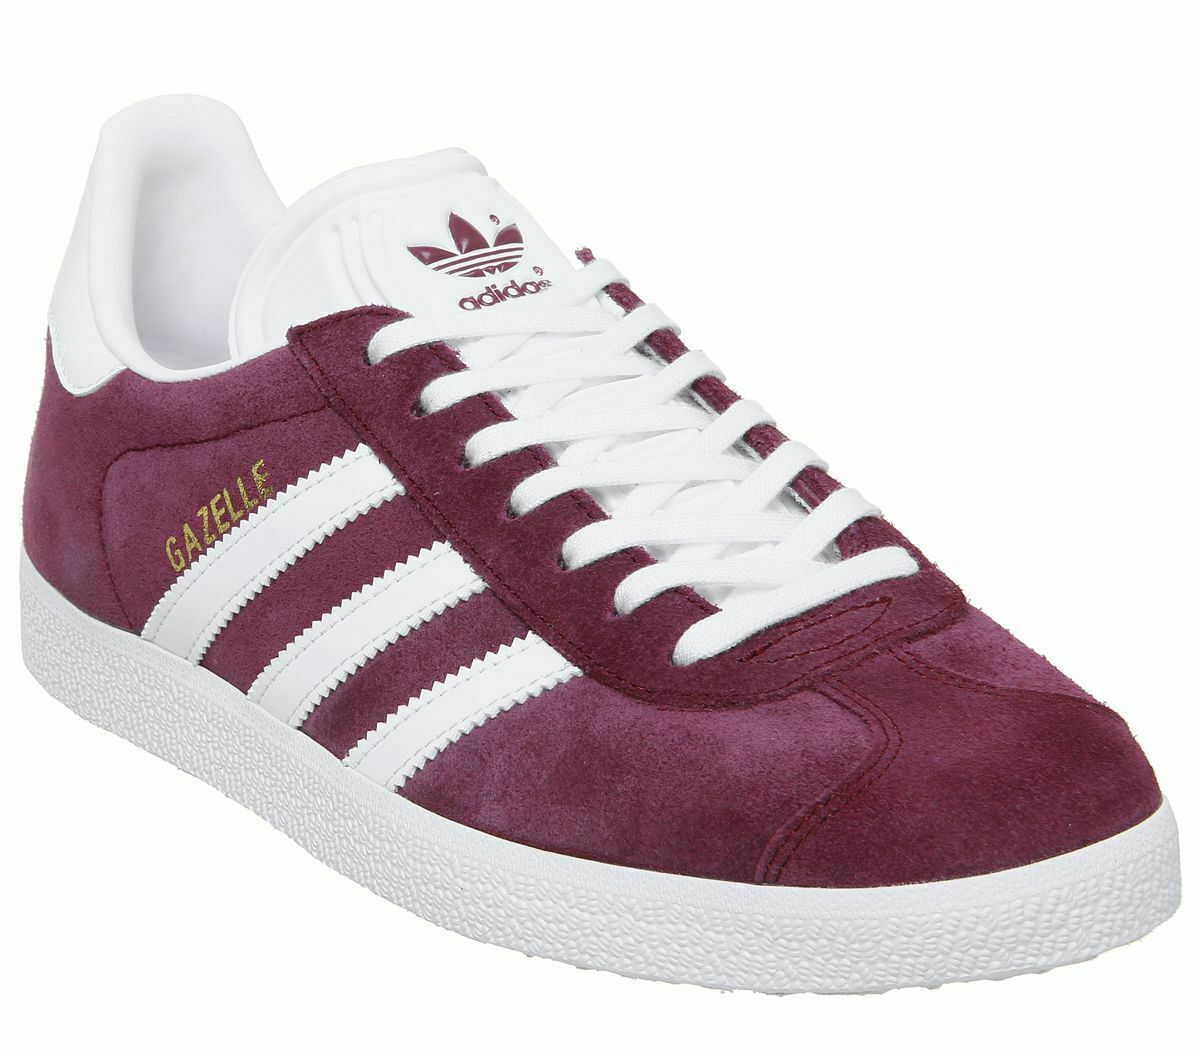 Mens Adidas Gazelle Trainers Collegiate Burgundy Trainers schuhe